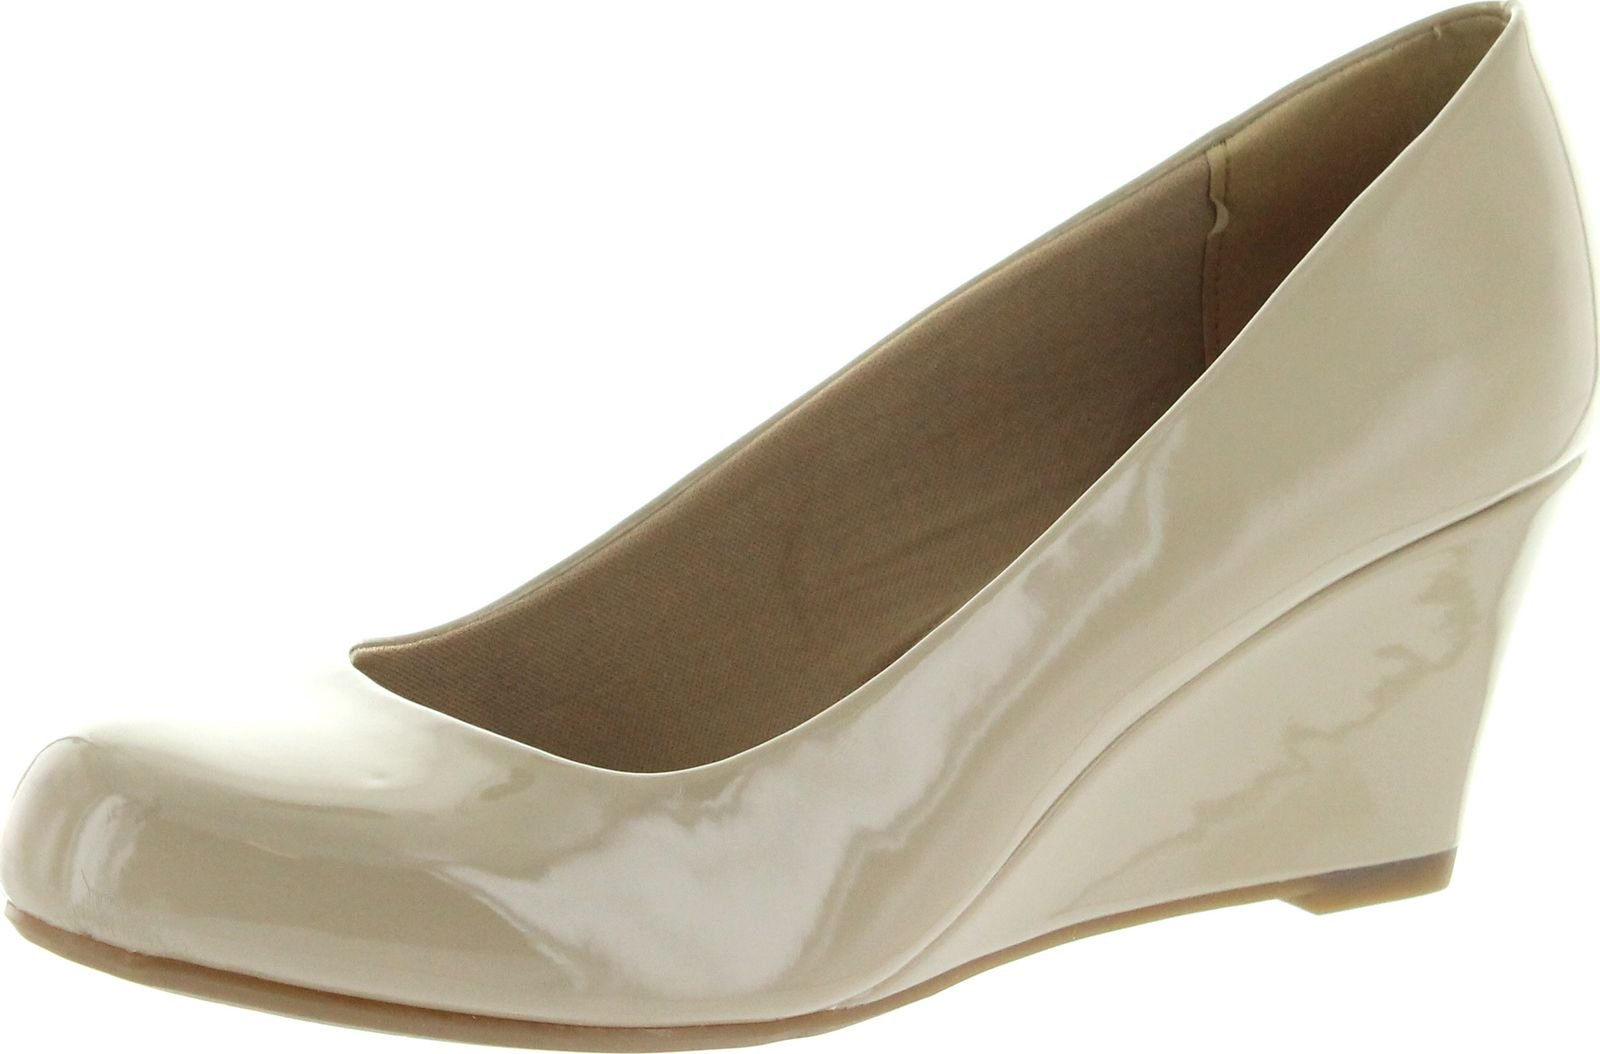 Forever Link Women's DORIS-22 Patent Round Toe Wedge Pumps,7.5 B(M) US,Beige